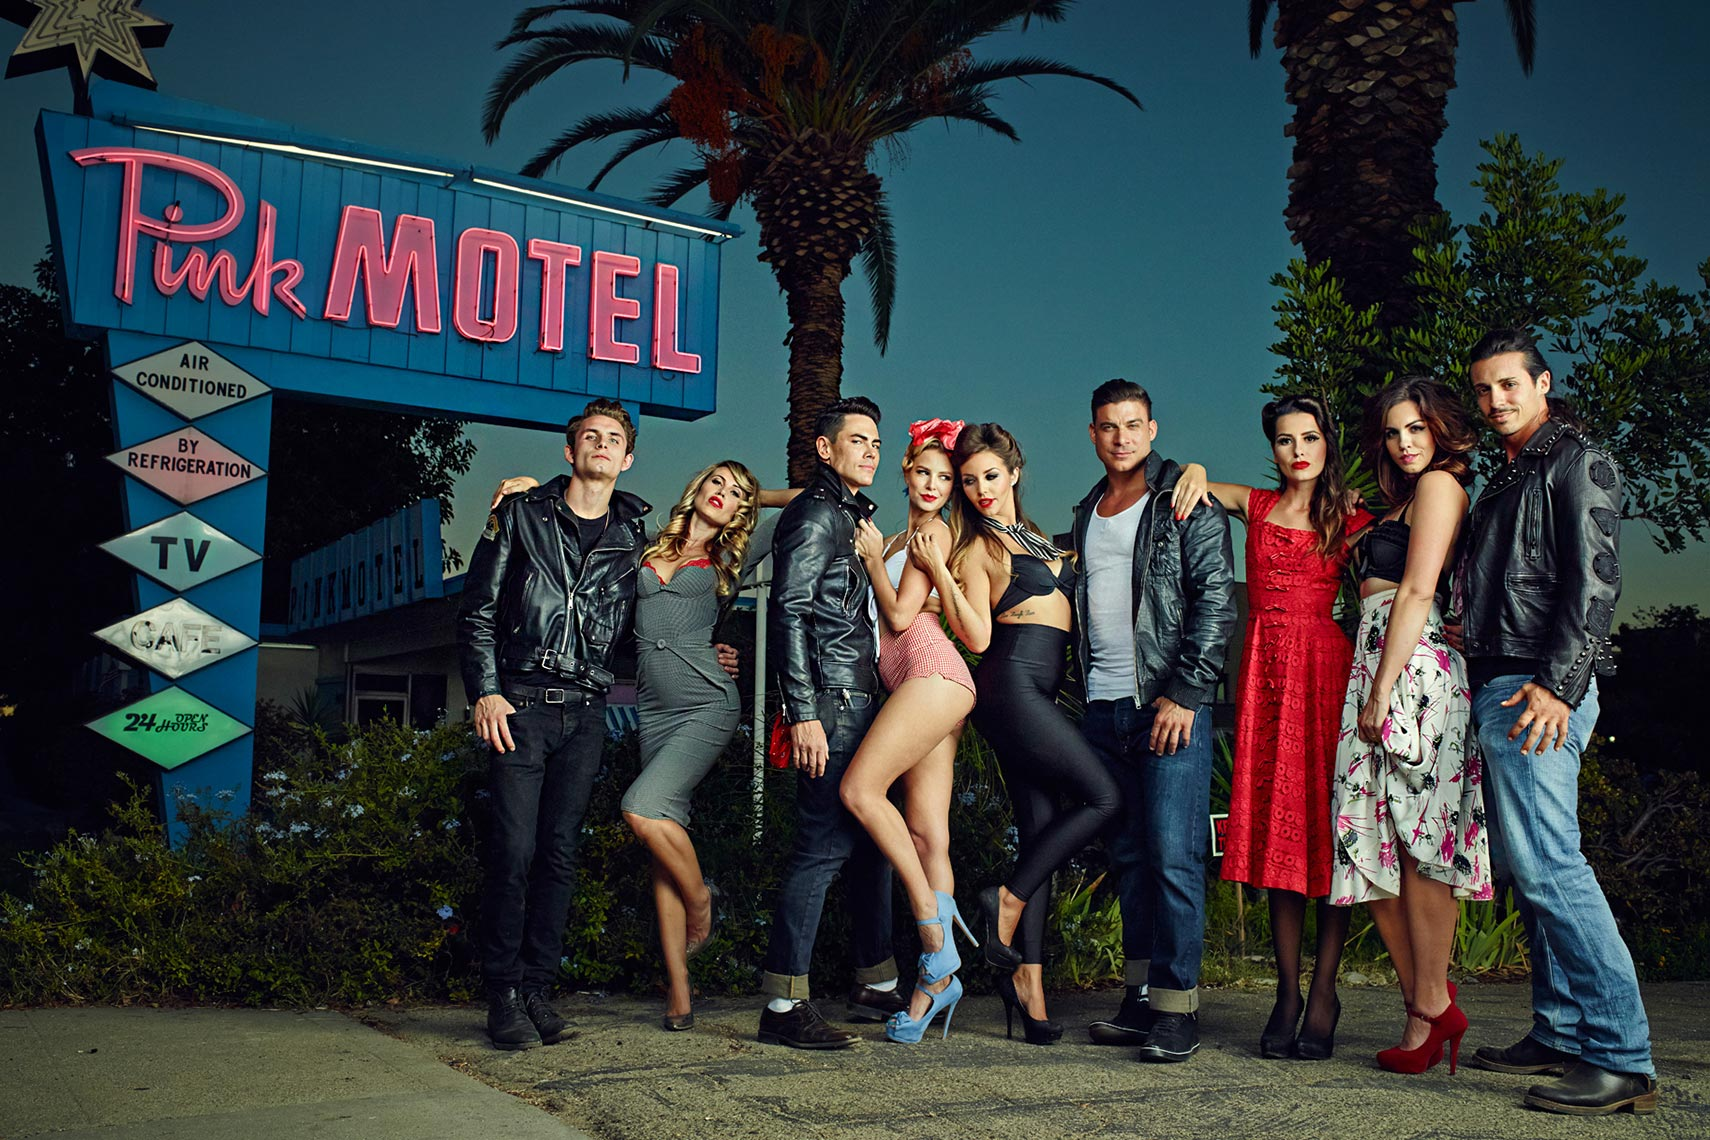 vanderpump-rules-season-3-pink-motel-32